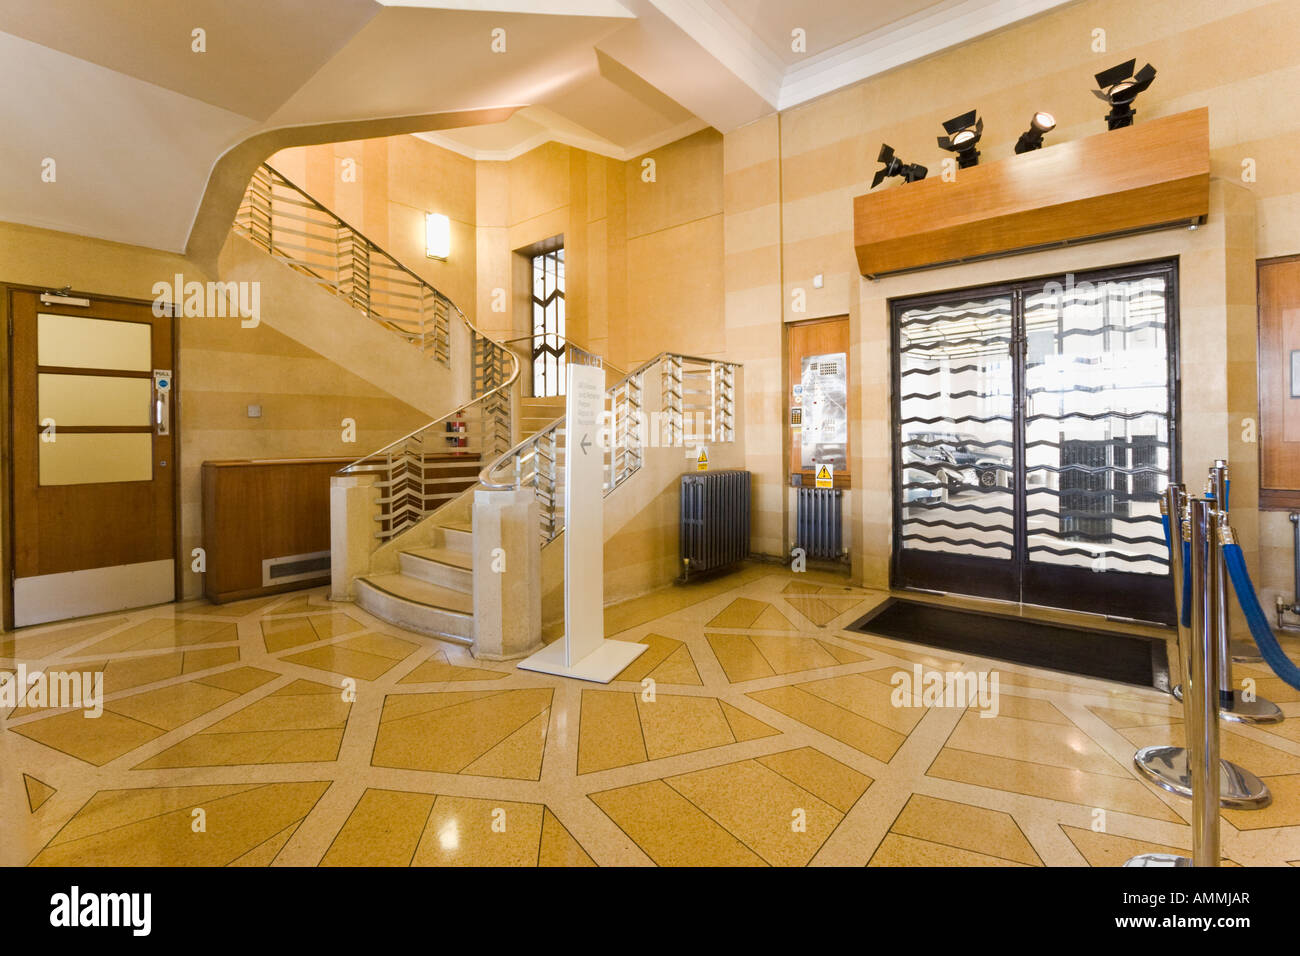 art deco hallway interior st olaf house london stock photo royalty free image 15297310 alamy. Black Bedroom Furniture Sets. Home Design Ideas